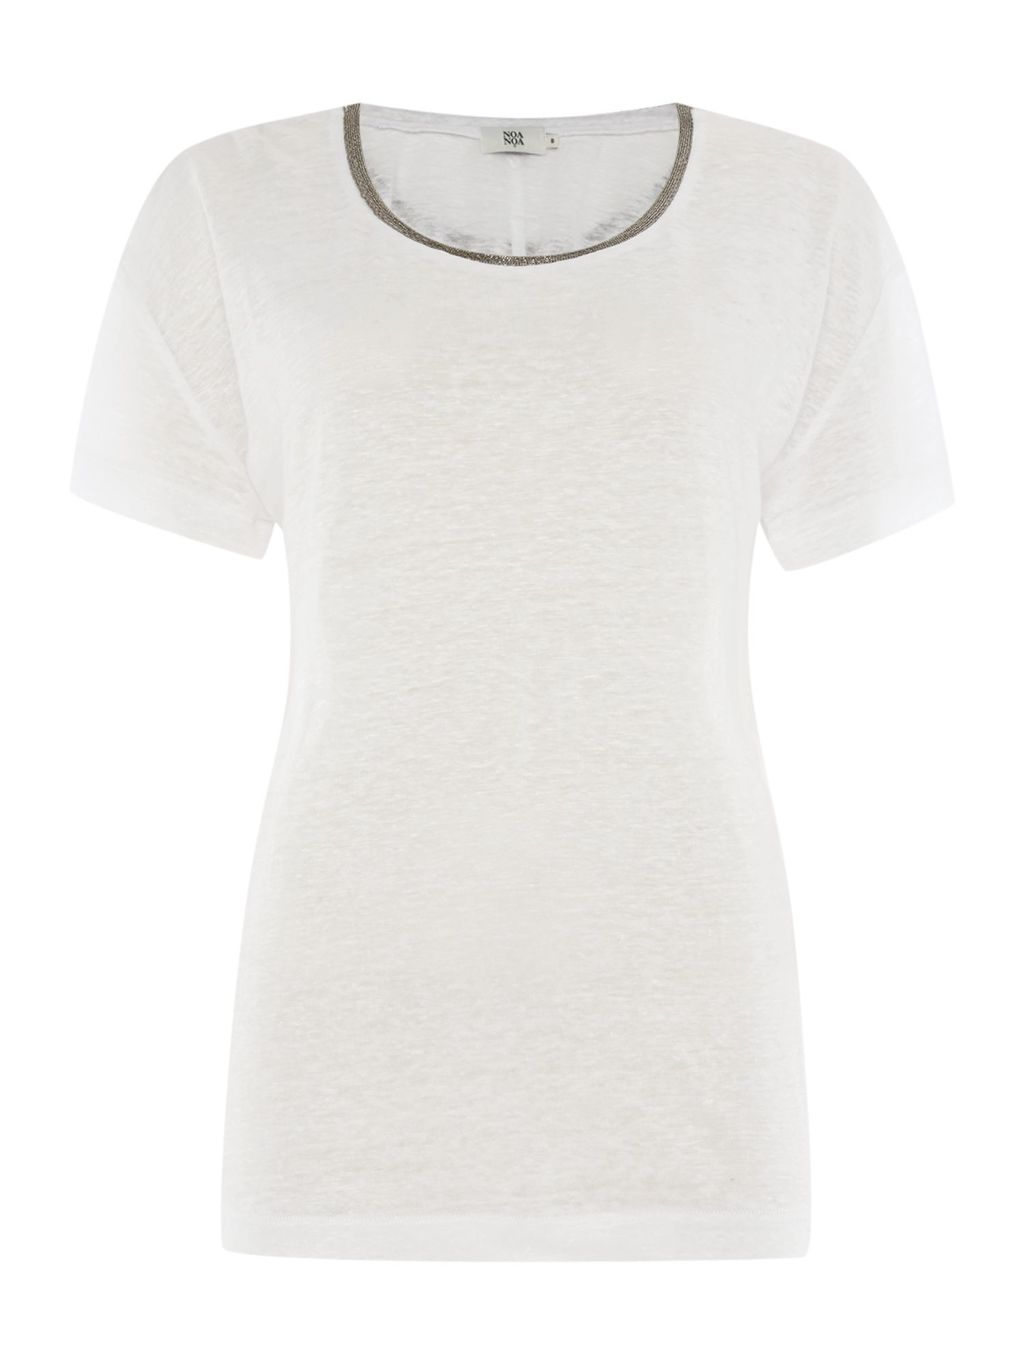 Short Sleeve T Shirt, White - neckline: round neck; pattern: plain; style: t-shirt; predominant colour: white; occasions: casual; length: standard; fibres: linen - 100%; fit: body skimming; sleeve length: short sleeve; sleeve style: standard; pattern type: fabric; texture group: jersey - stretchy/drapey; season: s/s 2016